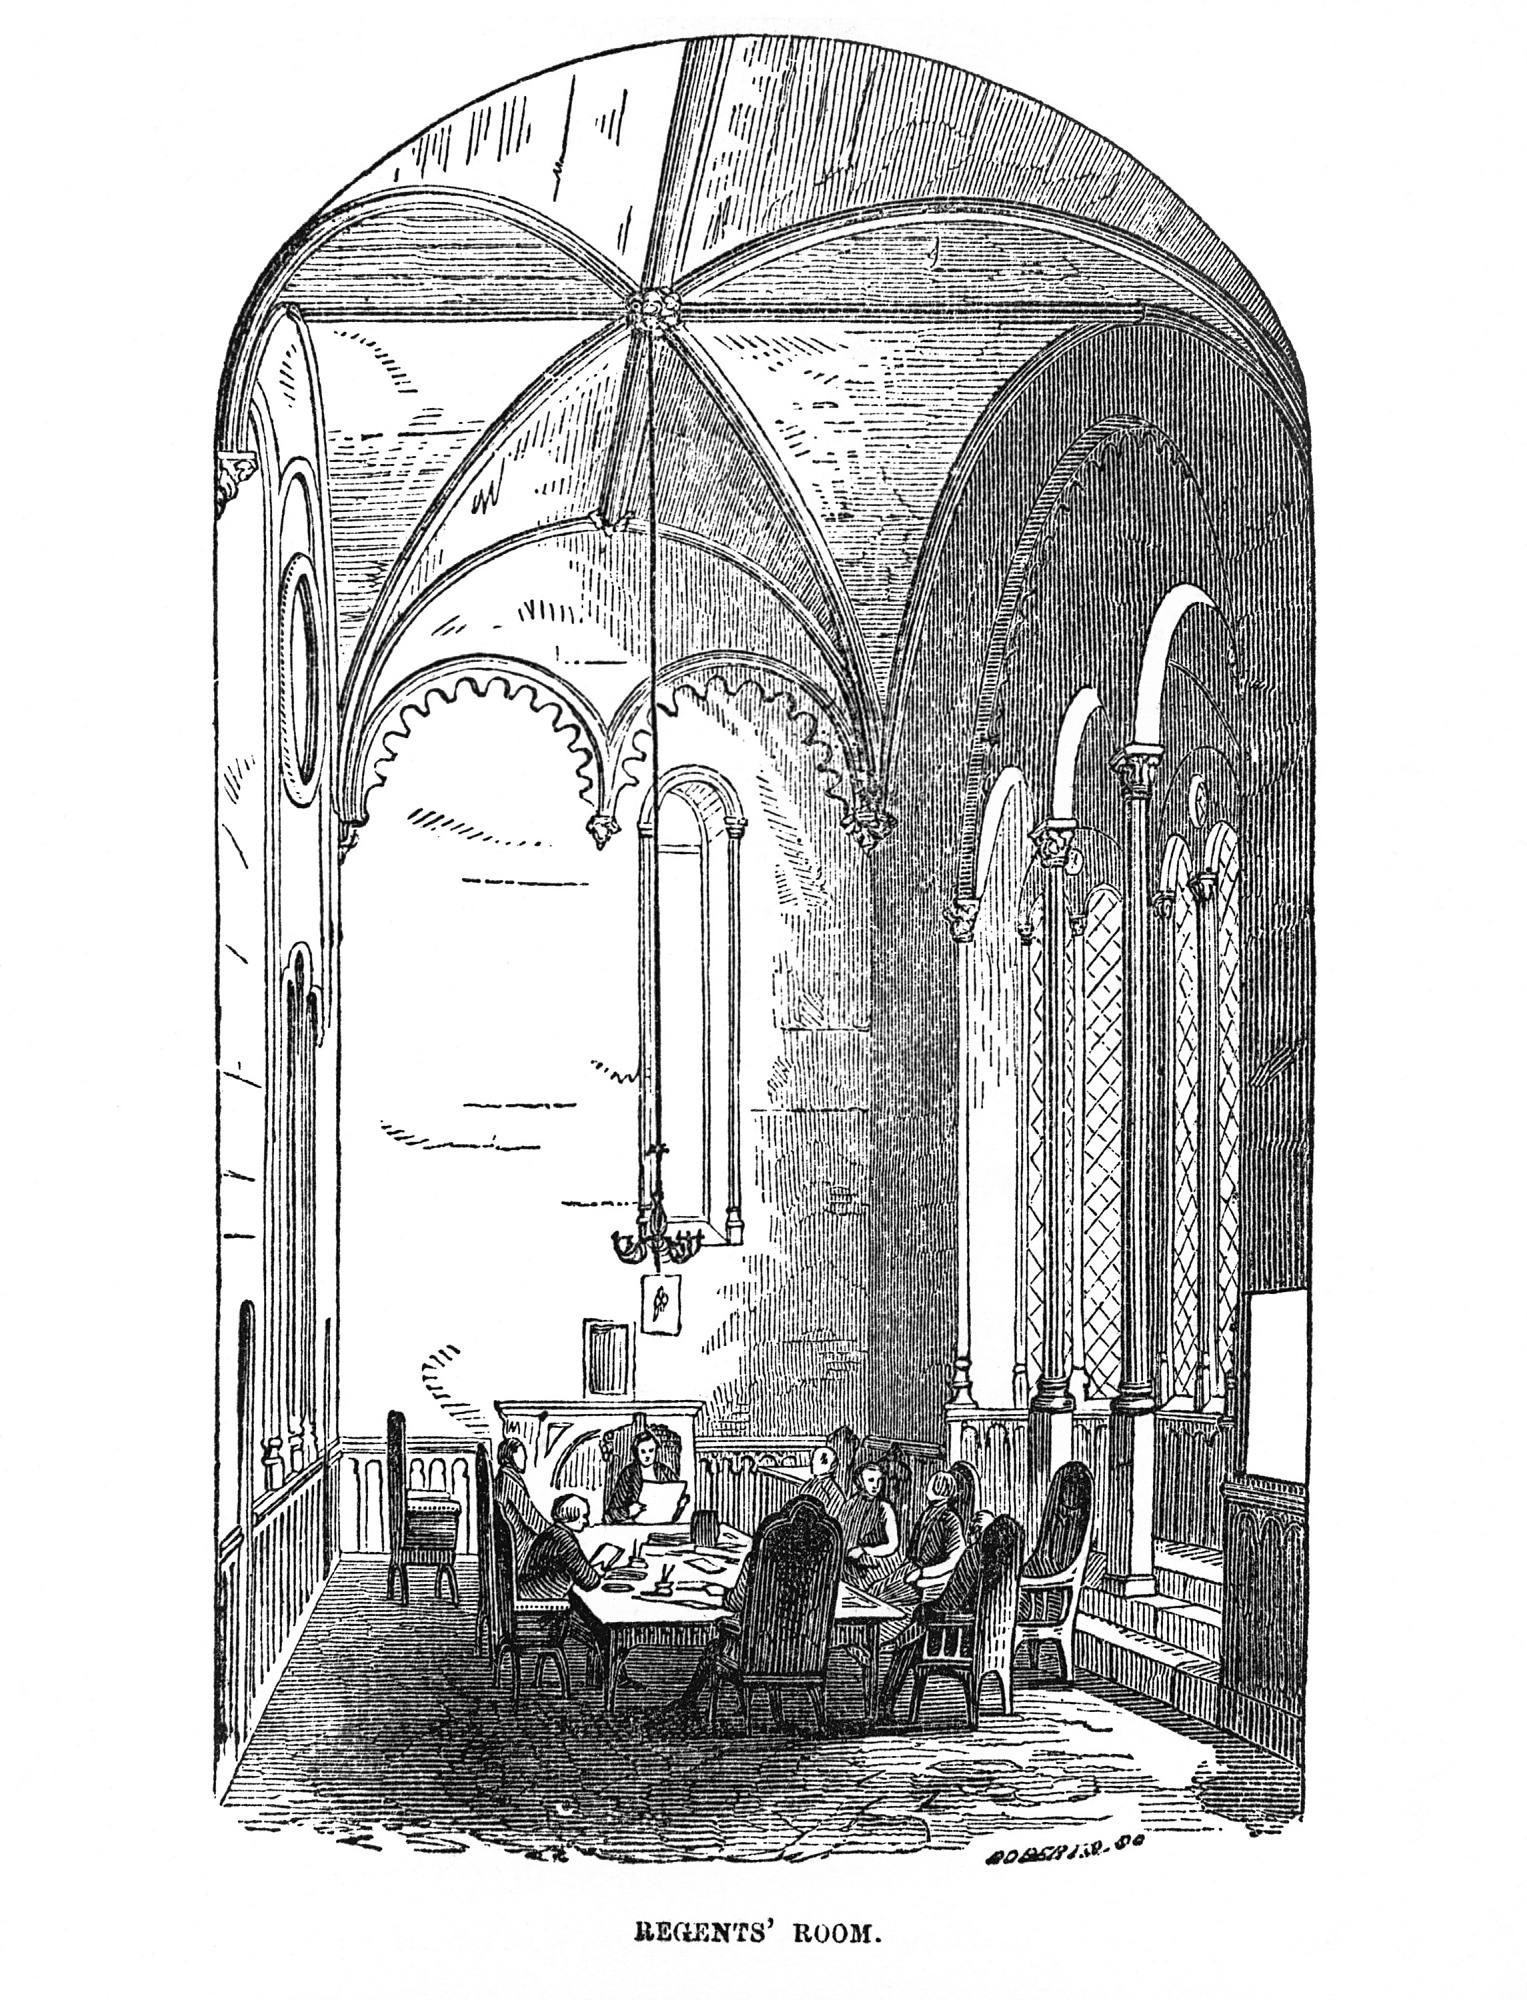 May 20 Regents' Room in Smithsonian Institution Building